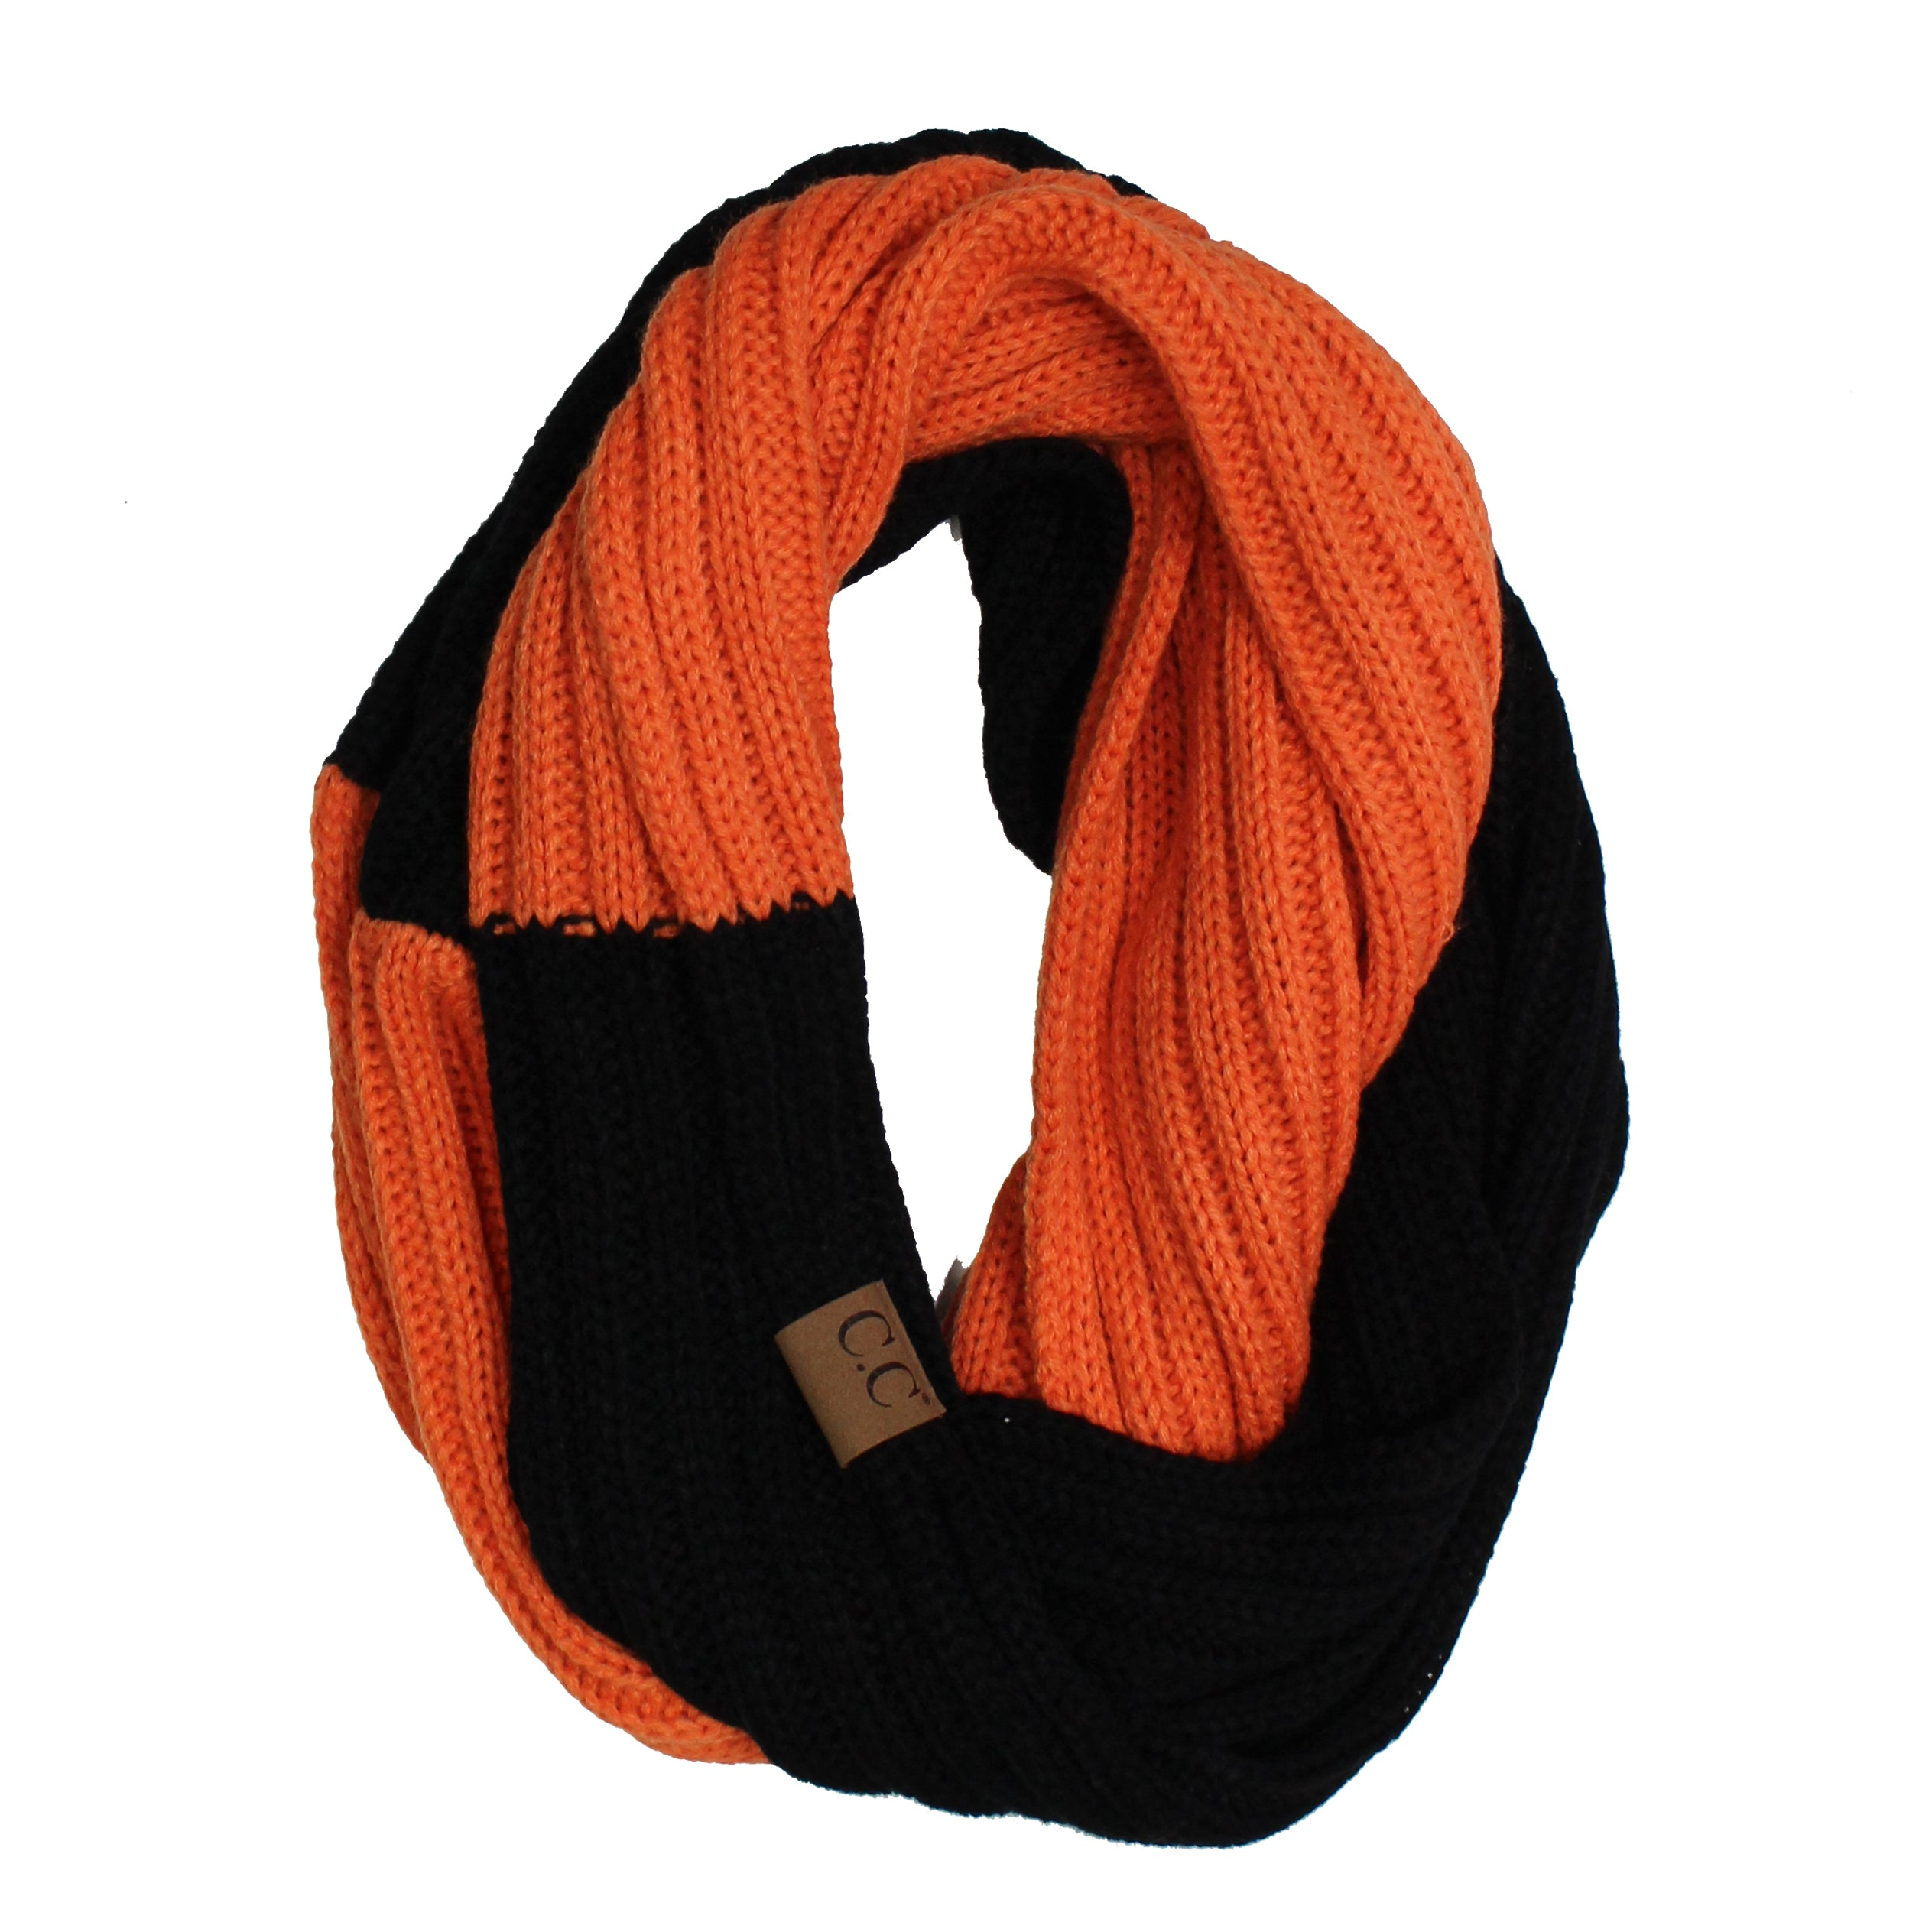 SF-56 Orange and Black Team Infinty Scarf